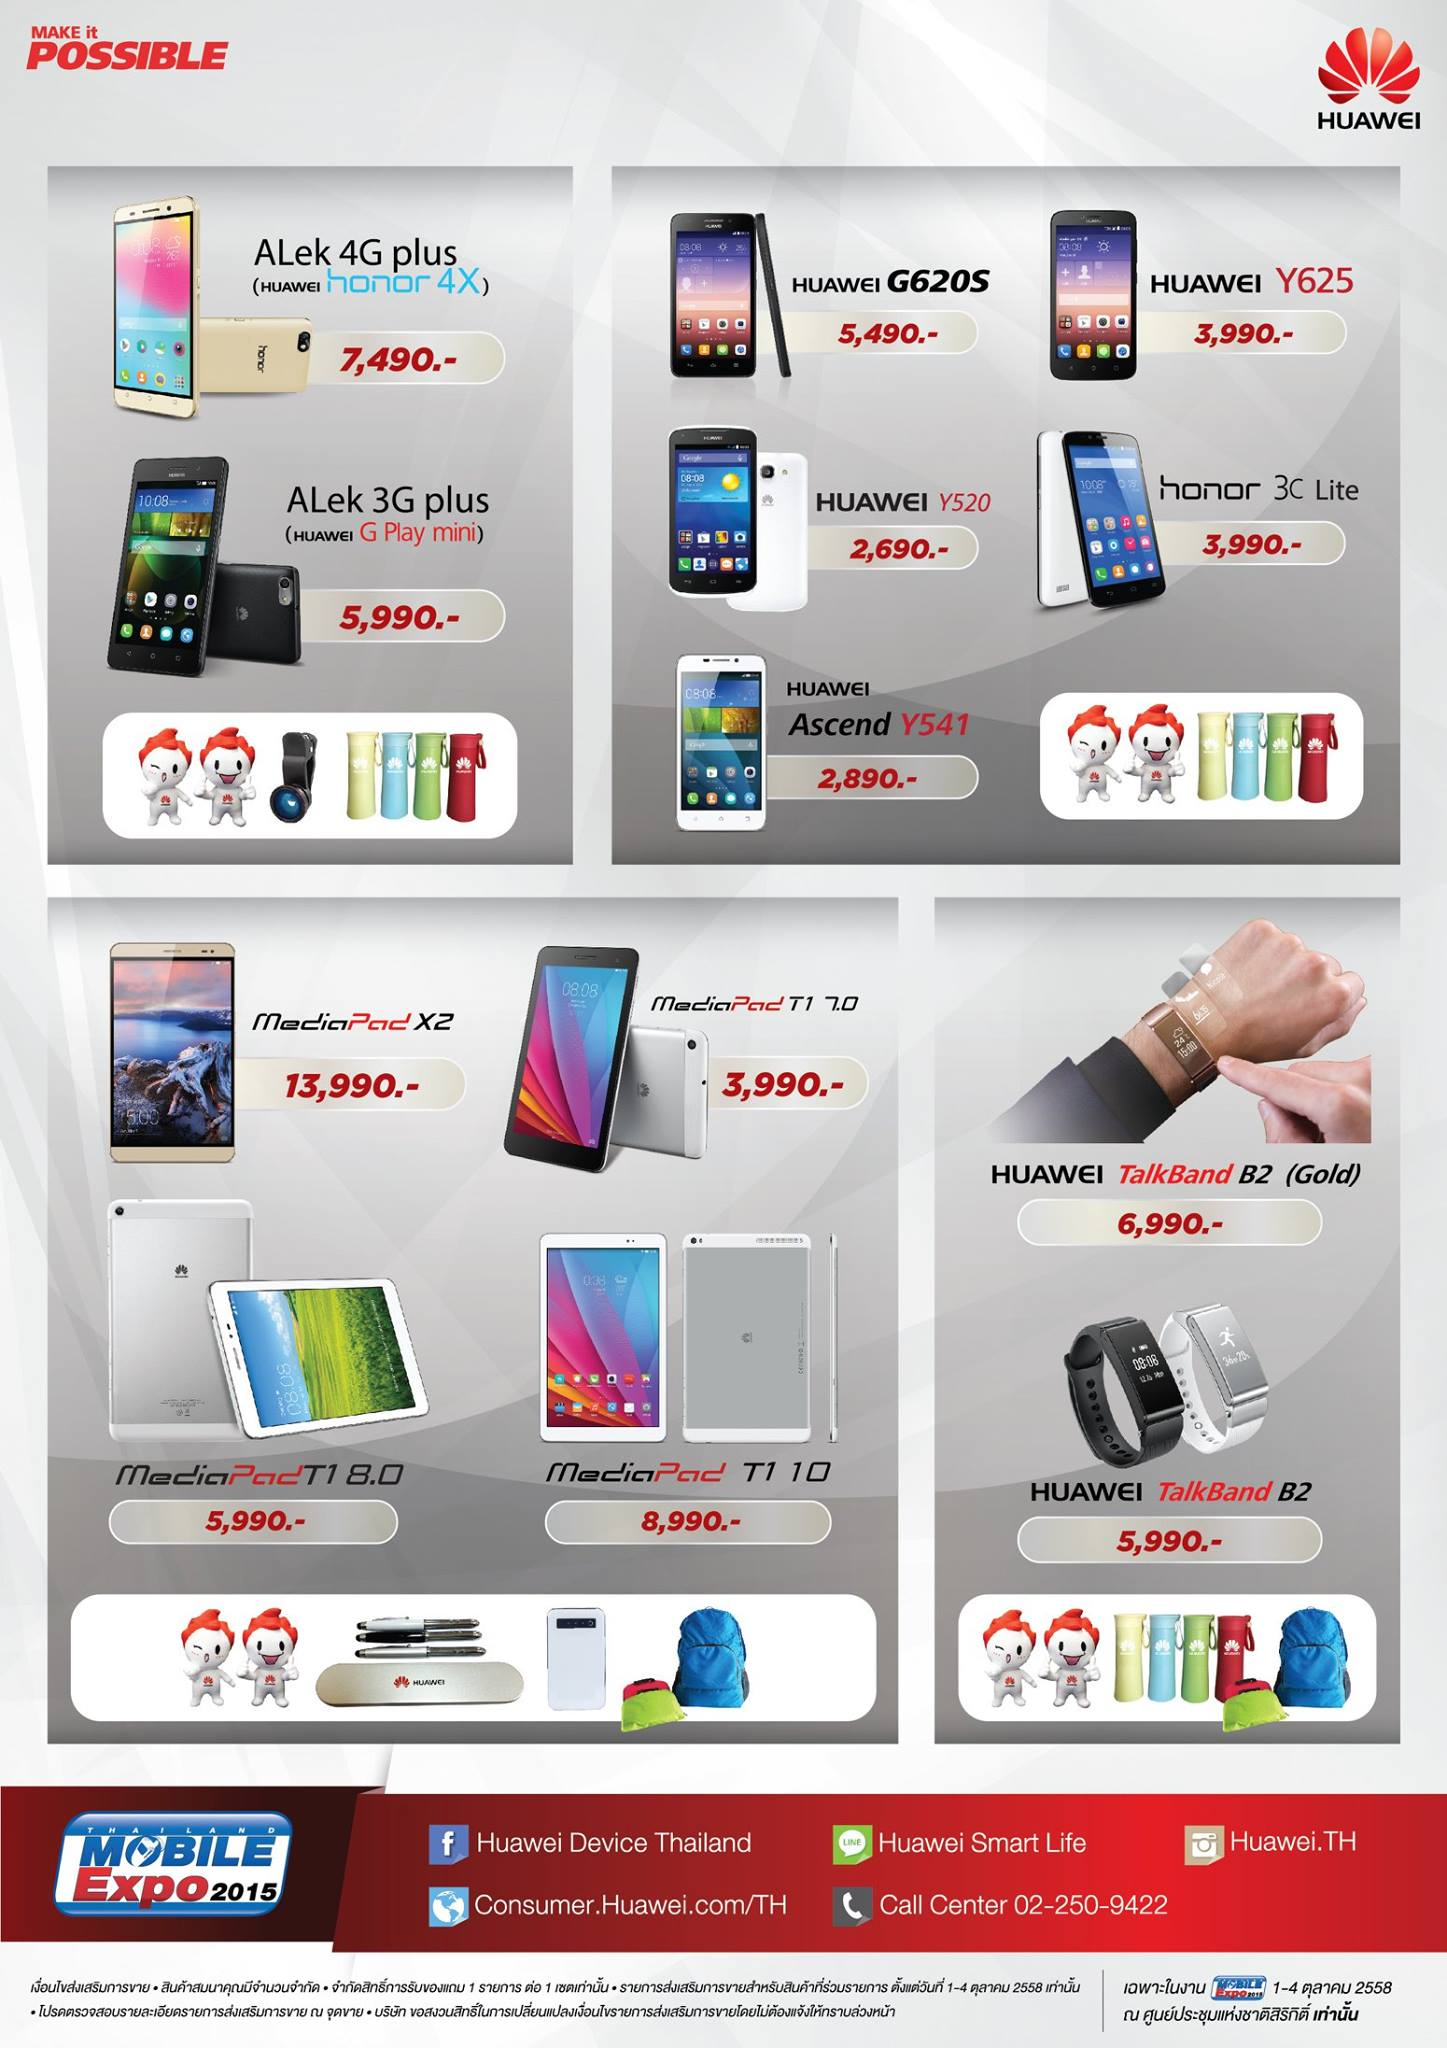 TME-2015-Showcase-Promotion-SpecPhone-013